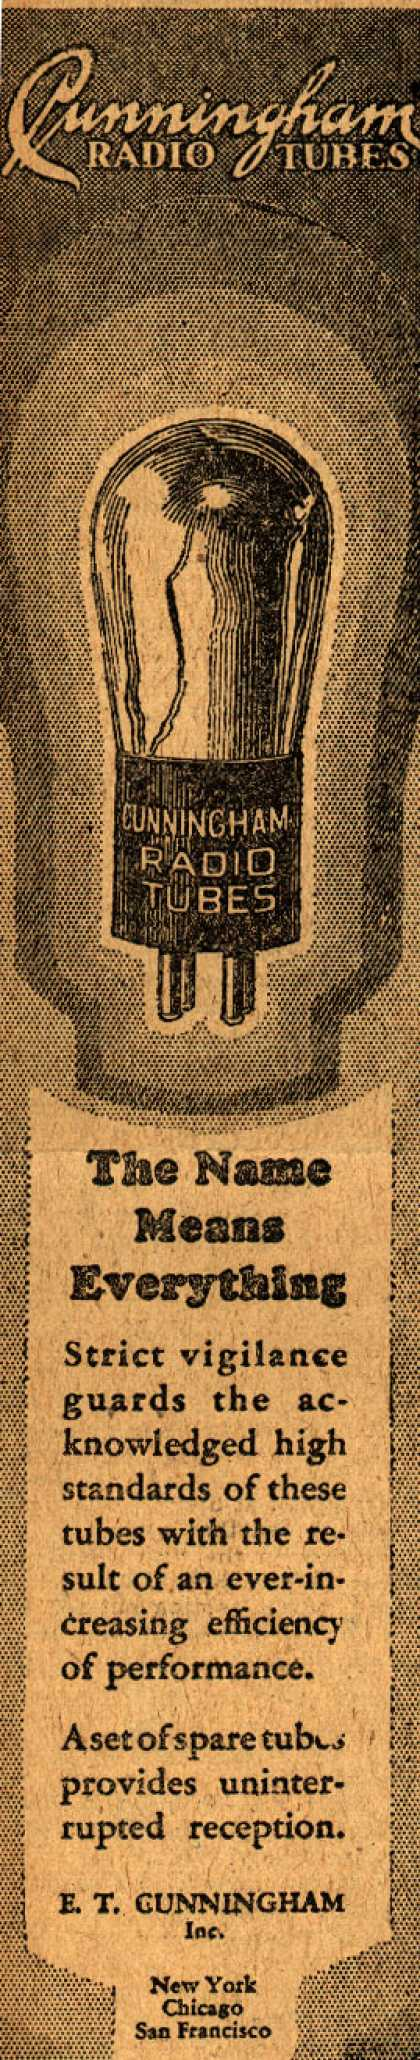 E.T. Cunningham's Radio Tubes – The name means everything (1928)